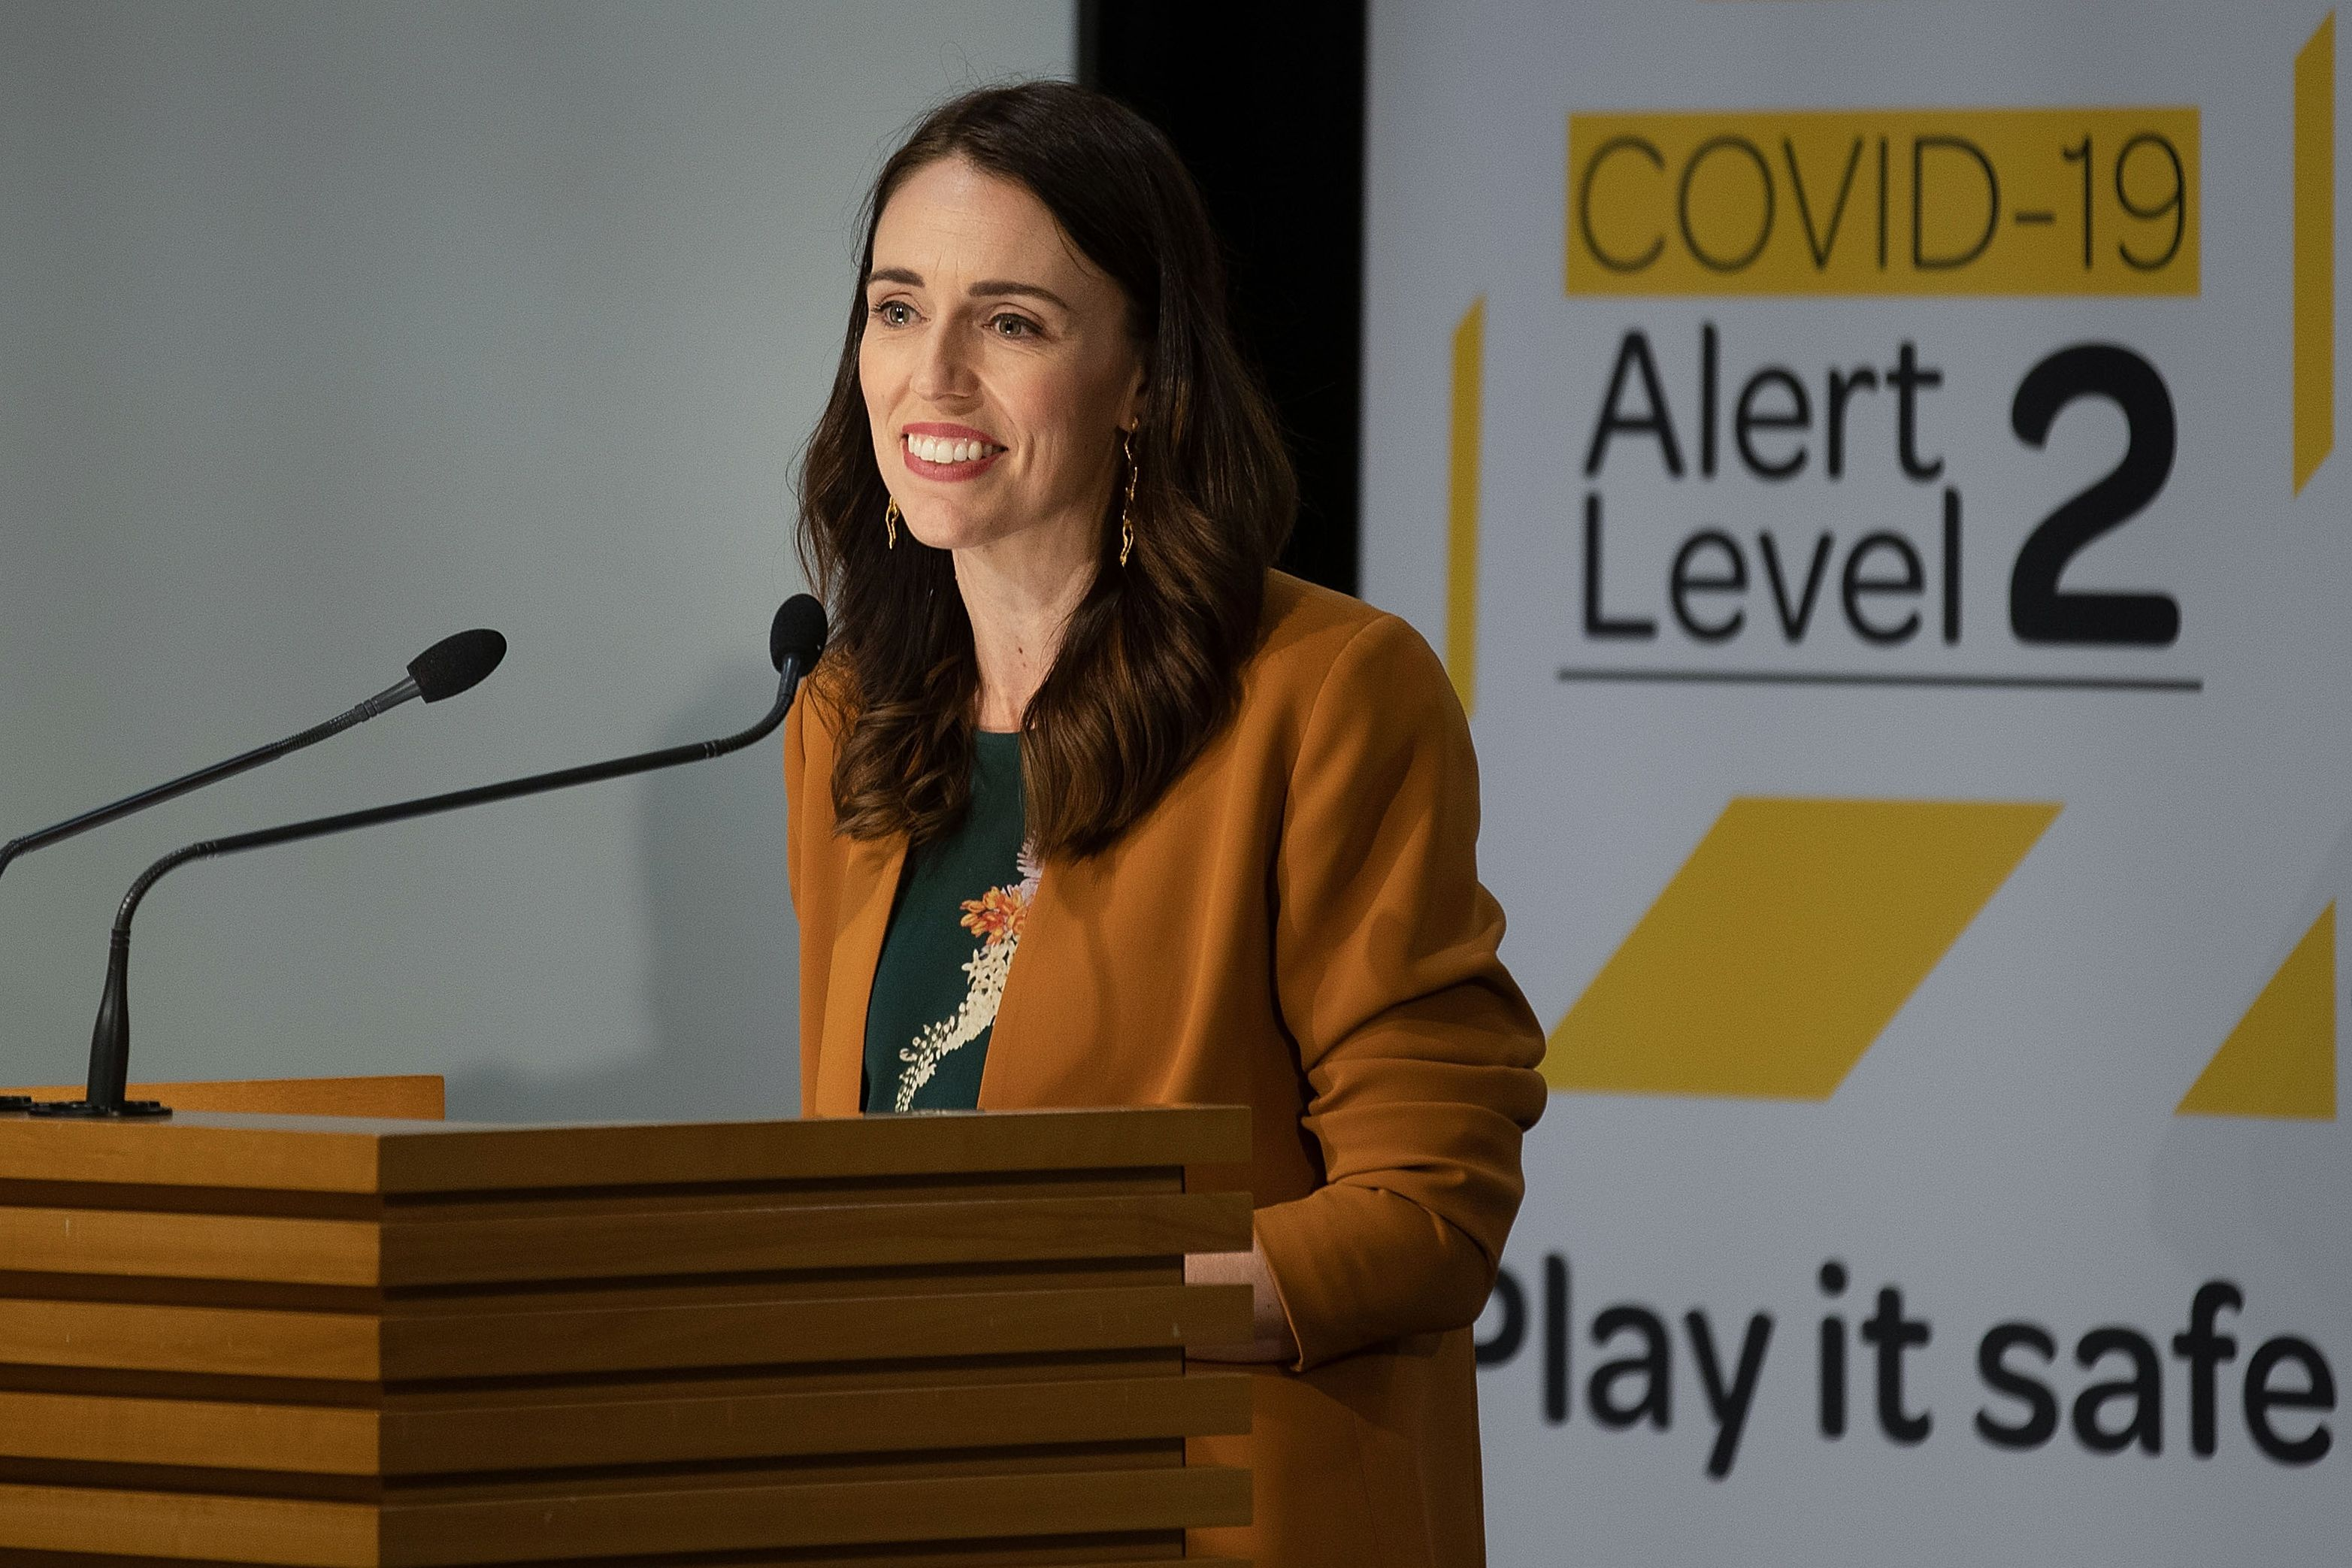 New Zealand's Prime Minister Jacinda Ardern takes part in a press conference about the COVID-19 coronavirus at Parliament in Wellington on June 8, 2020. - New Zealand has no active COVID-19 cases after the country's final patient was given the all clear and released from isolation, health authorities said on June 8. (Photo by Marty MELVILLE / AFP) (Photo by MARTY MELVILLE/AFP via Getty Images)